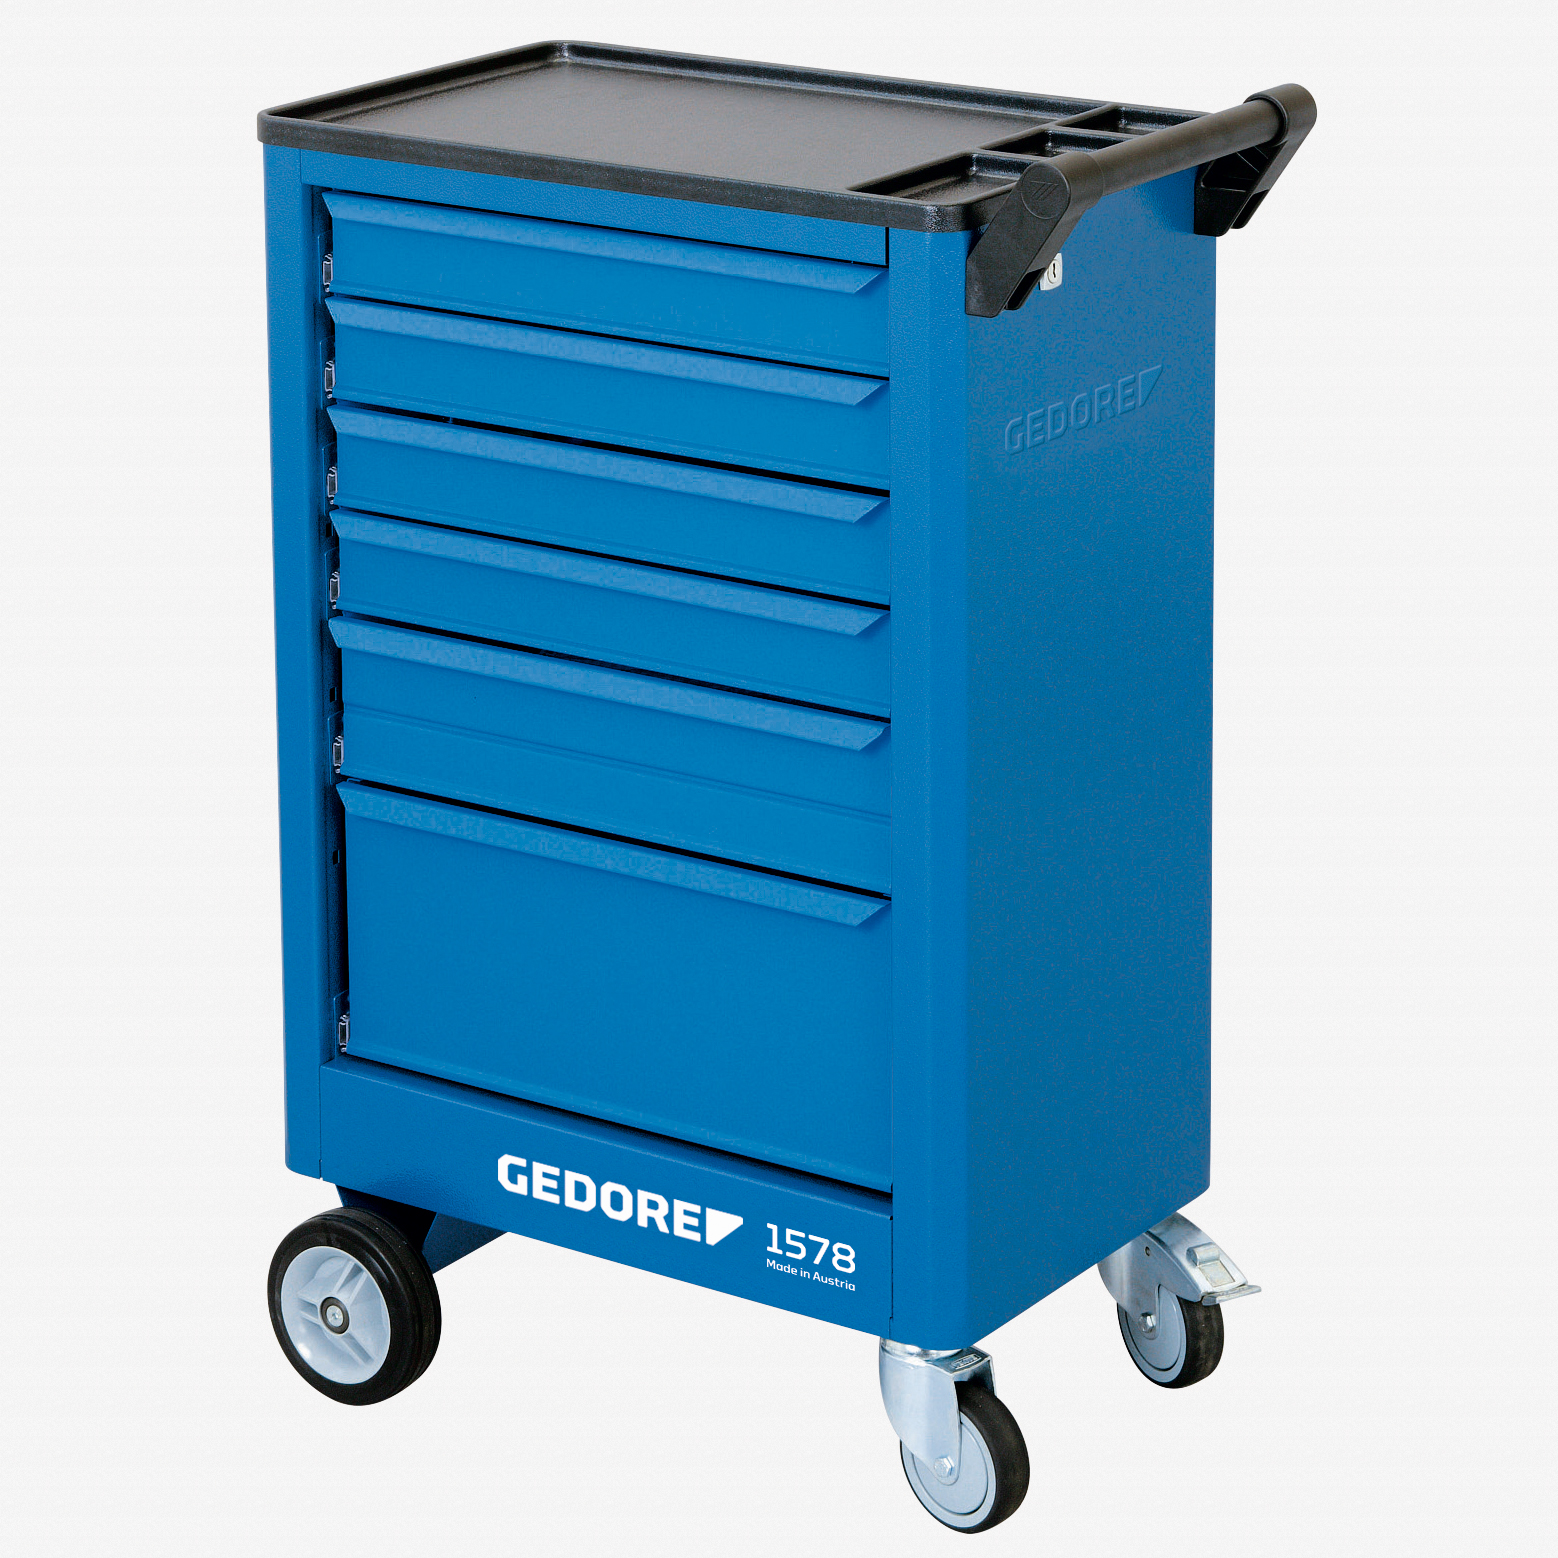 Gedore 1578 Tool trolley with 6 drawers - KC Tool